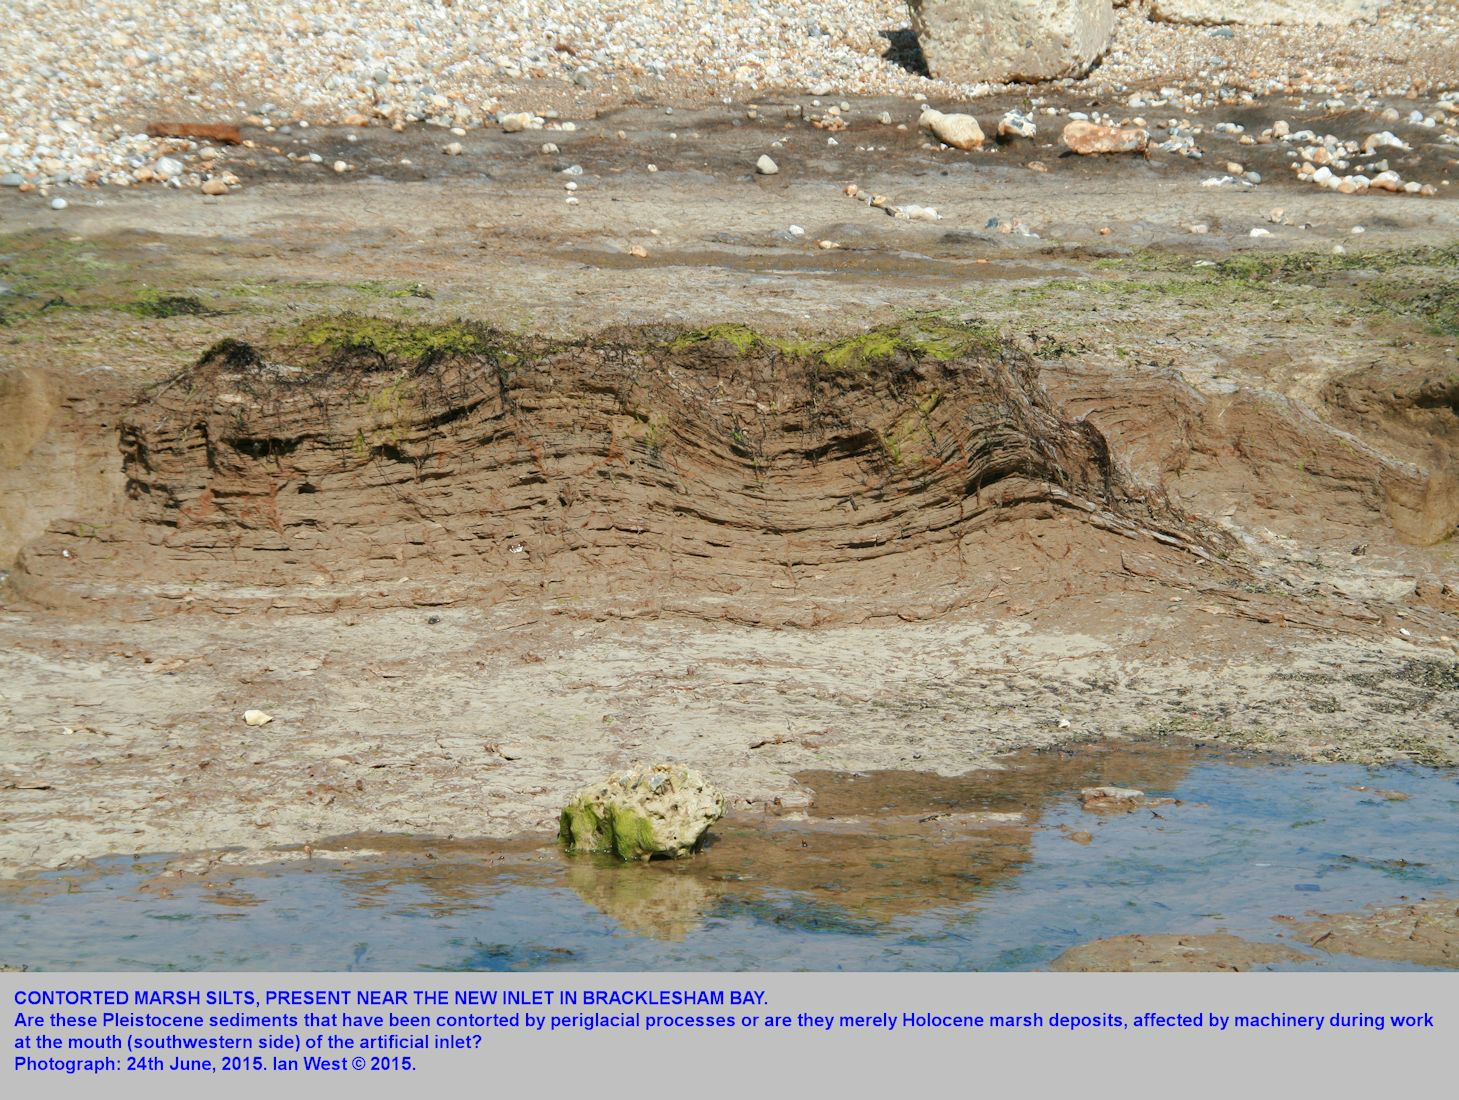 Contorted, laminated marsh silt deposits at the new artificial sea entrance, southern side, Bracklesham Bay, Sussex, 24th June 2015